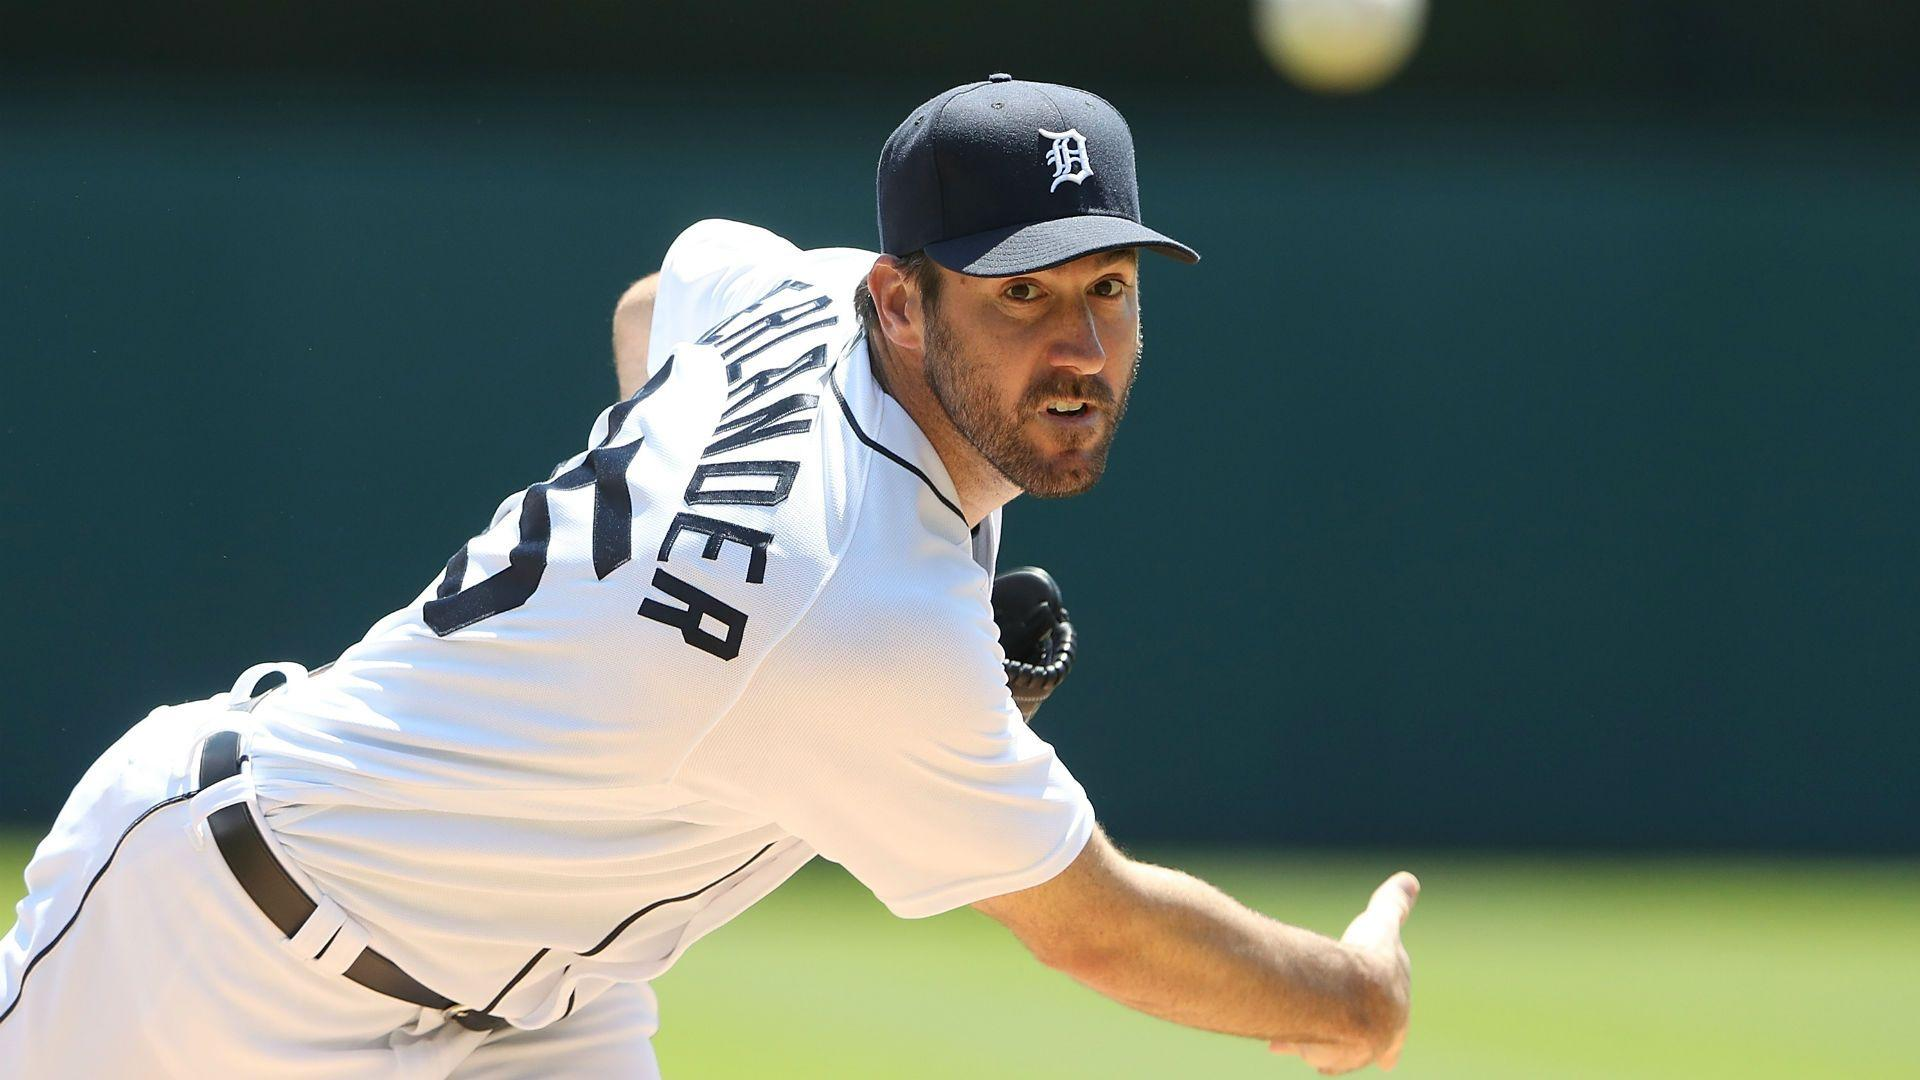 MLB trade rumors: Justin Verlander could still be option for ...